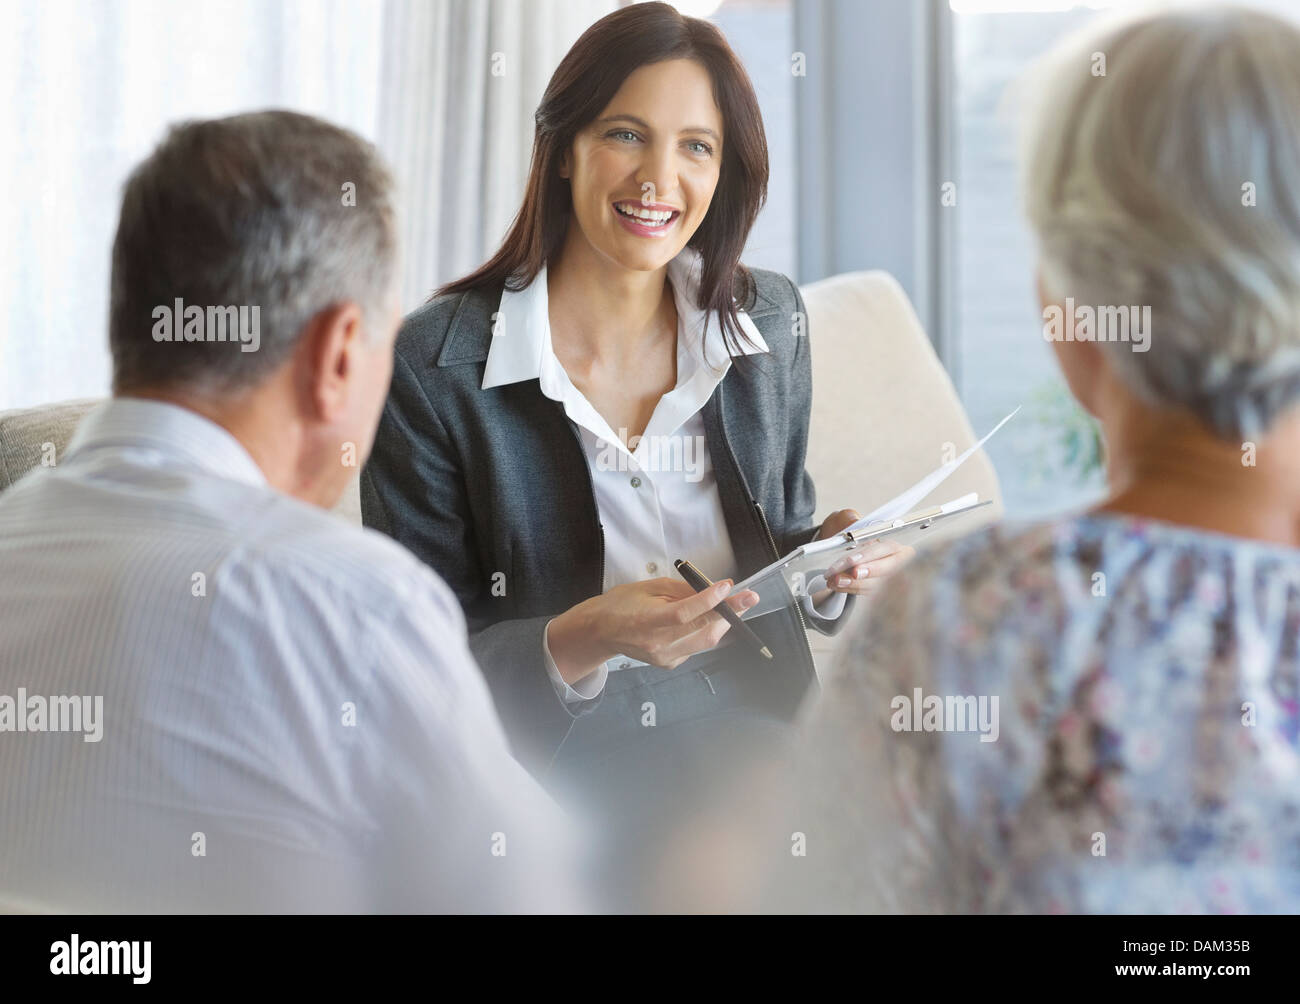 Financial advisor talking to clients in office - Stock Image